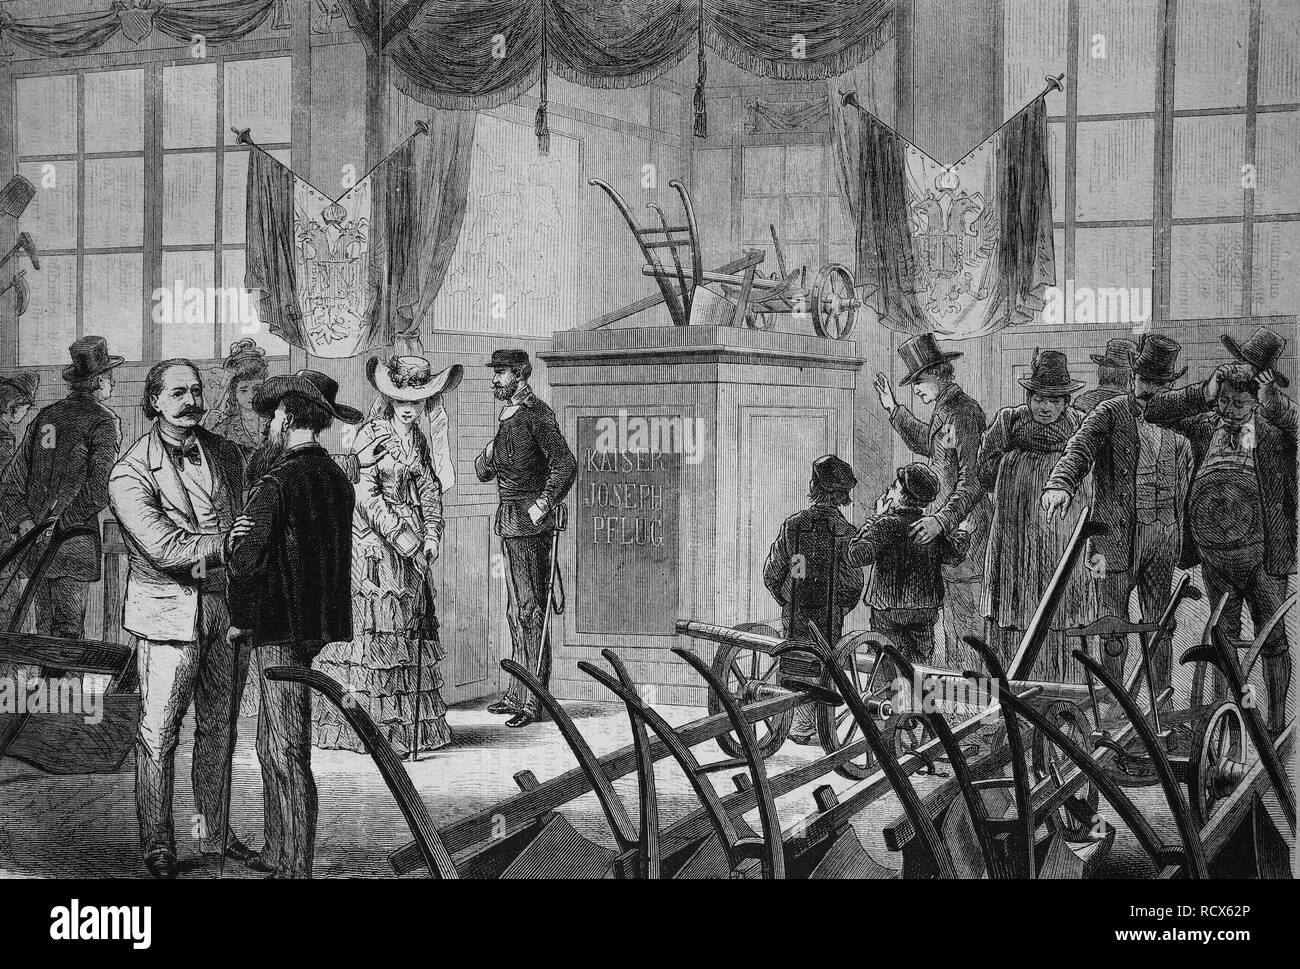 The plow pavilion at the Vienna World Exhibition, Vienna, Austria, wood engraving, c 1880 - Stock Image